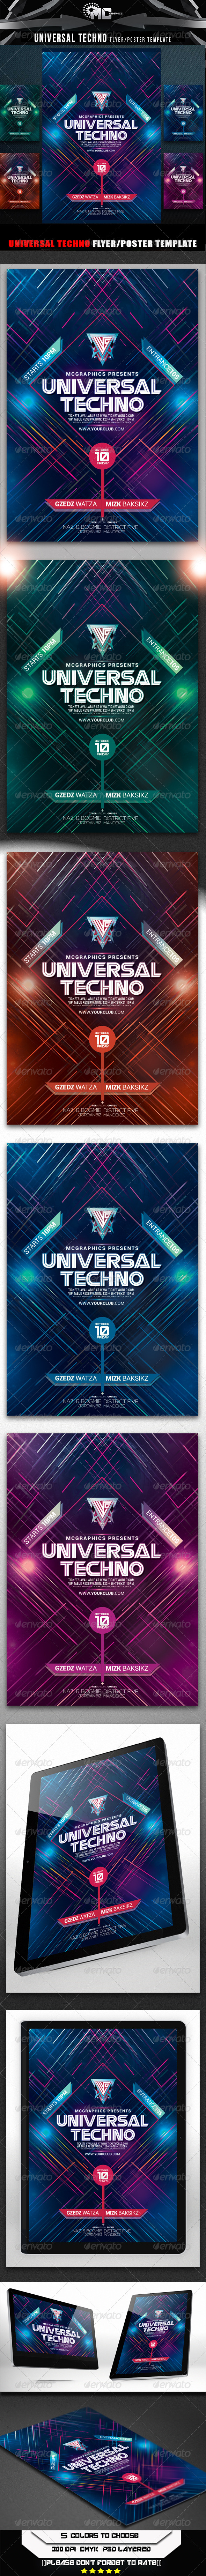 GraphicRiver Universal Techno Flyer Poster Template 8543982